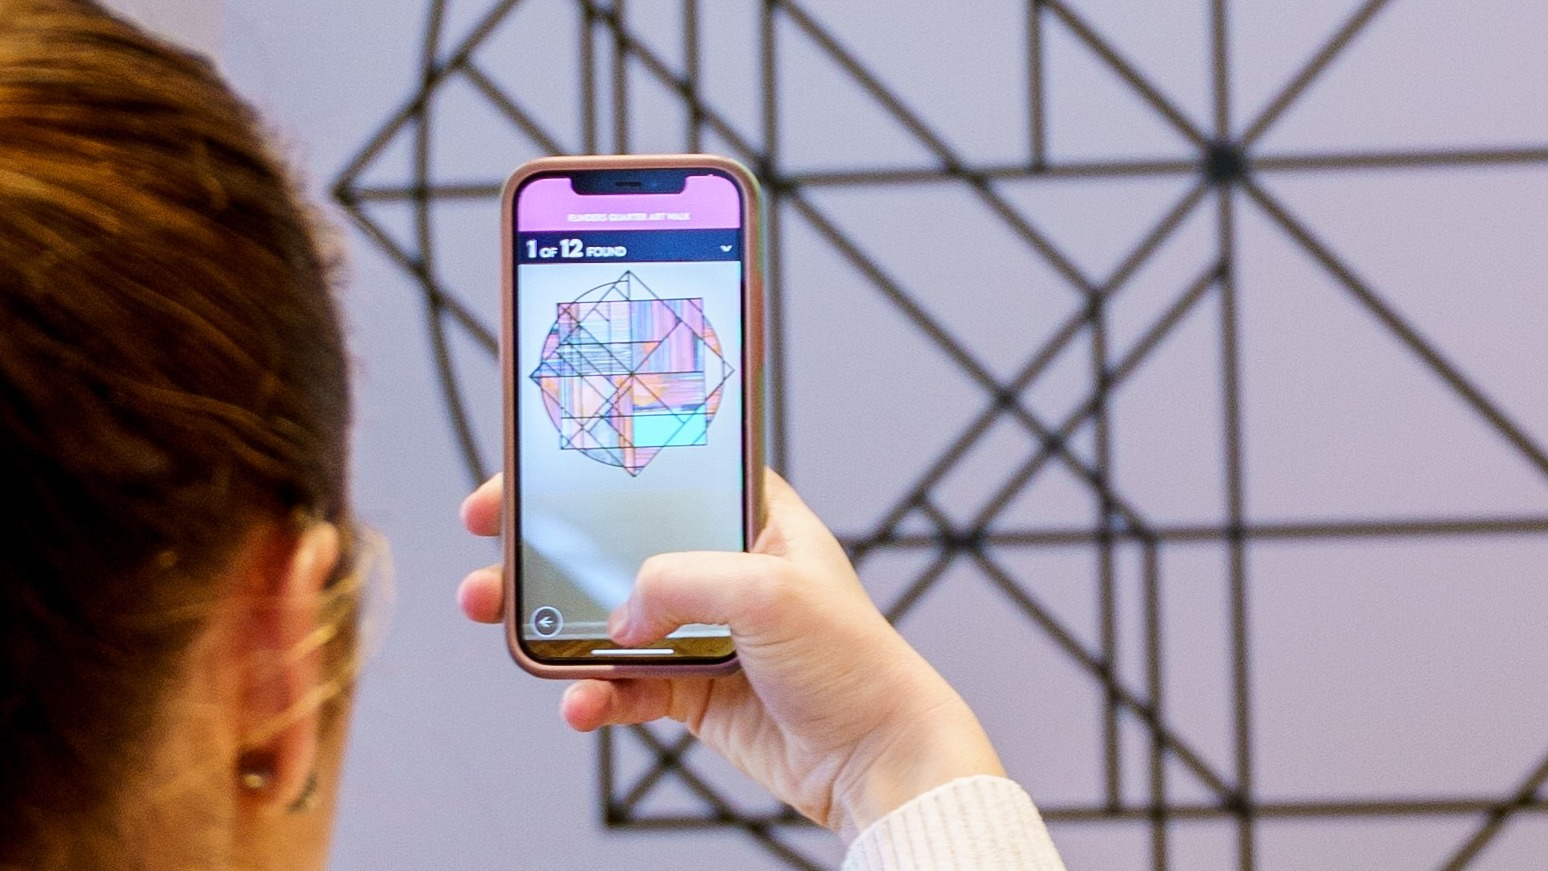 A person holds a phone camera up to an artwork and the image is different on the phone screen